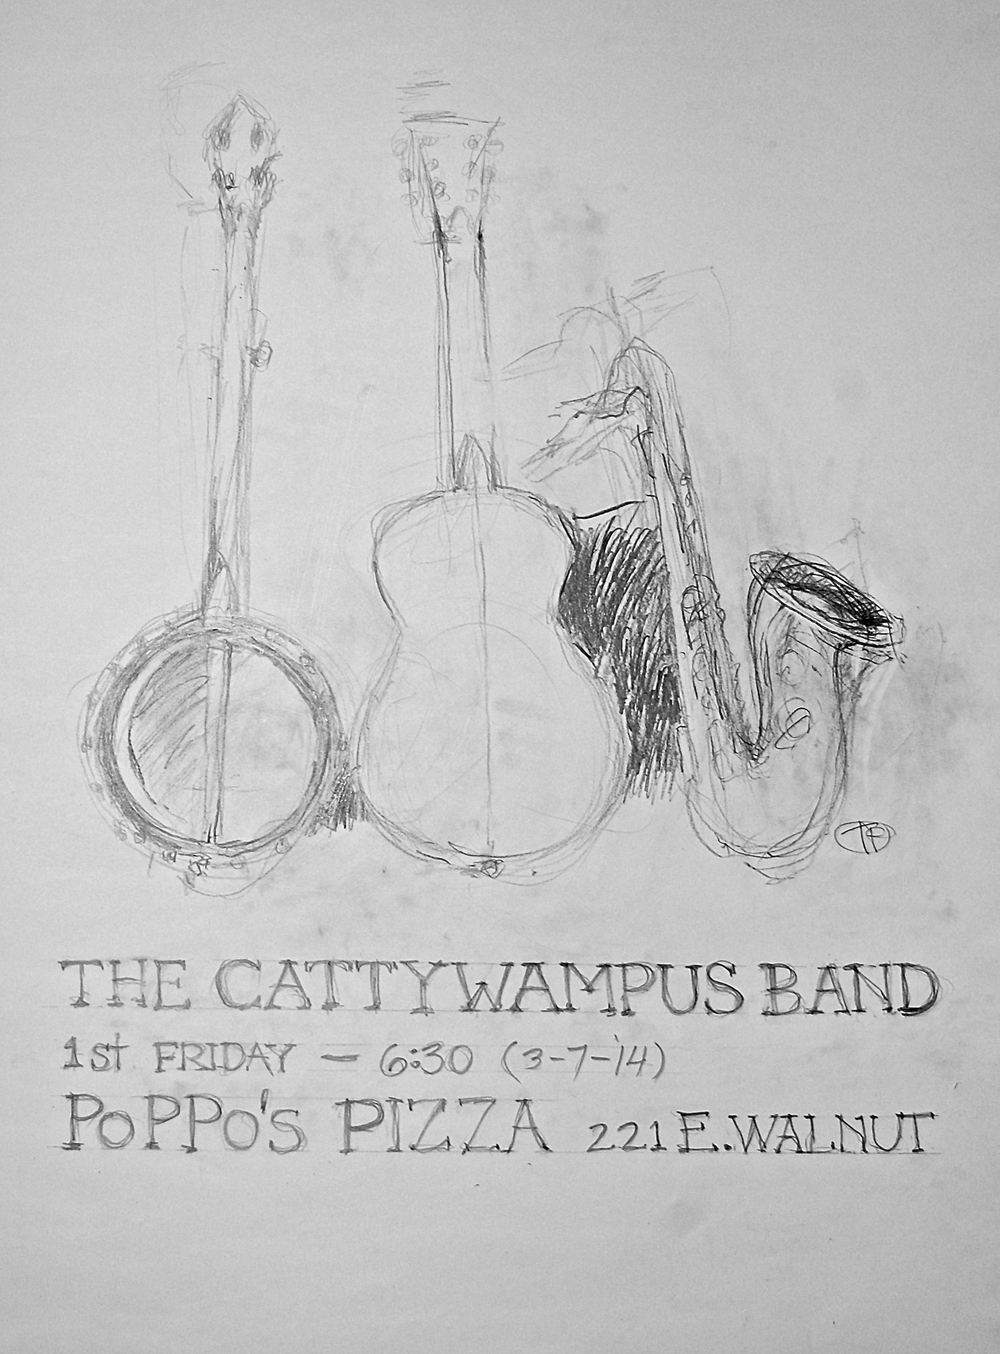 Cattywampus Band poster